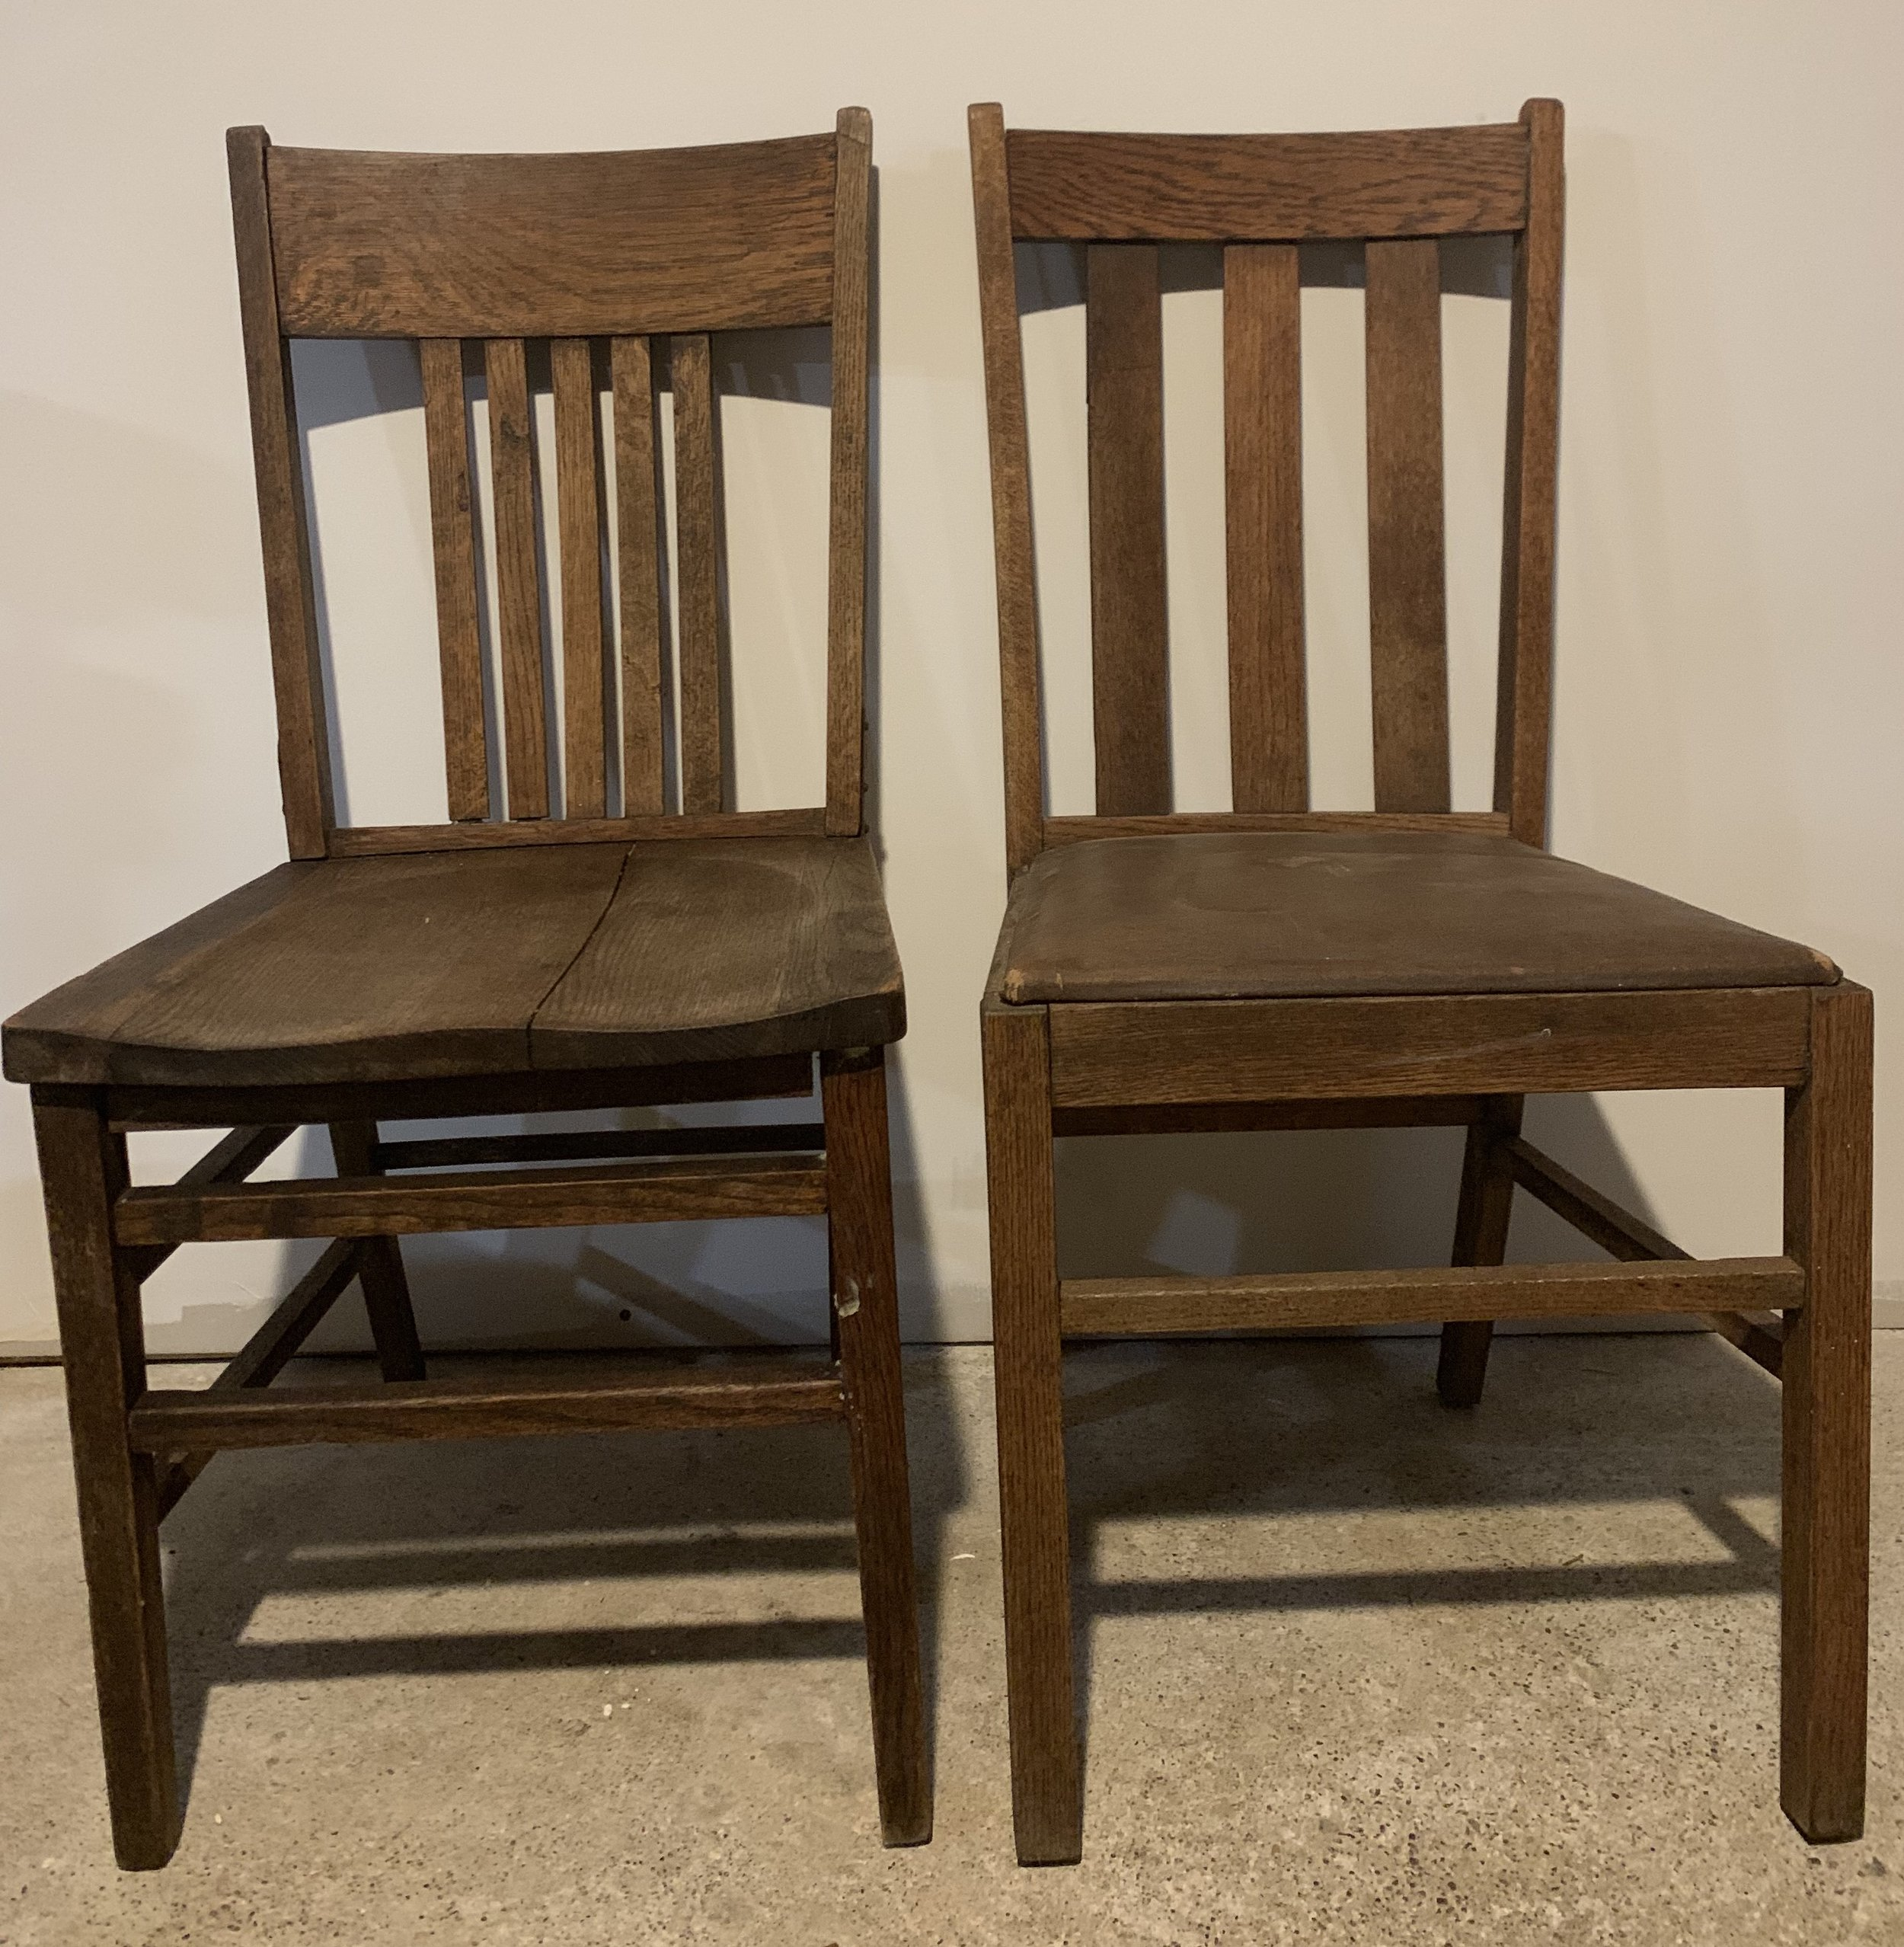 Vintage Wooden Chairs (6) $8ea